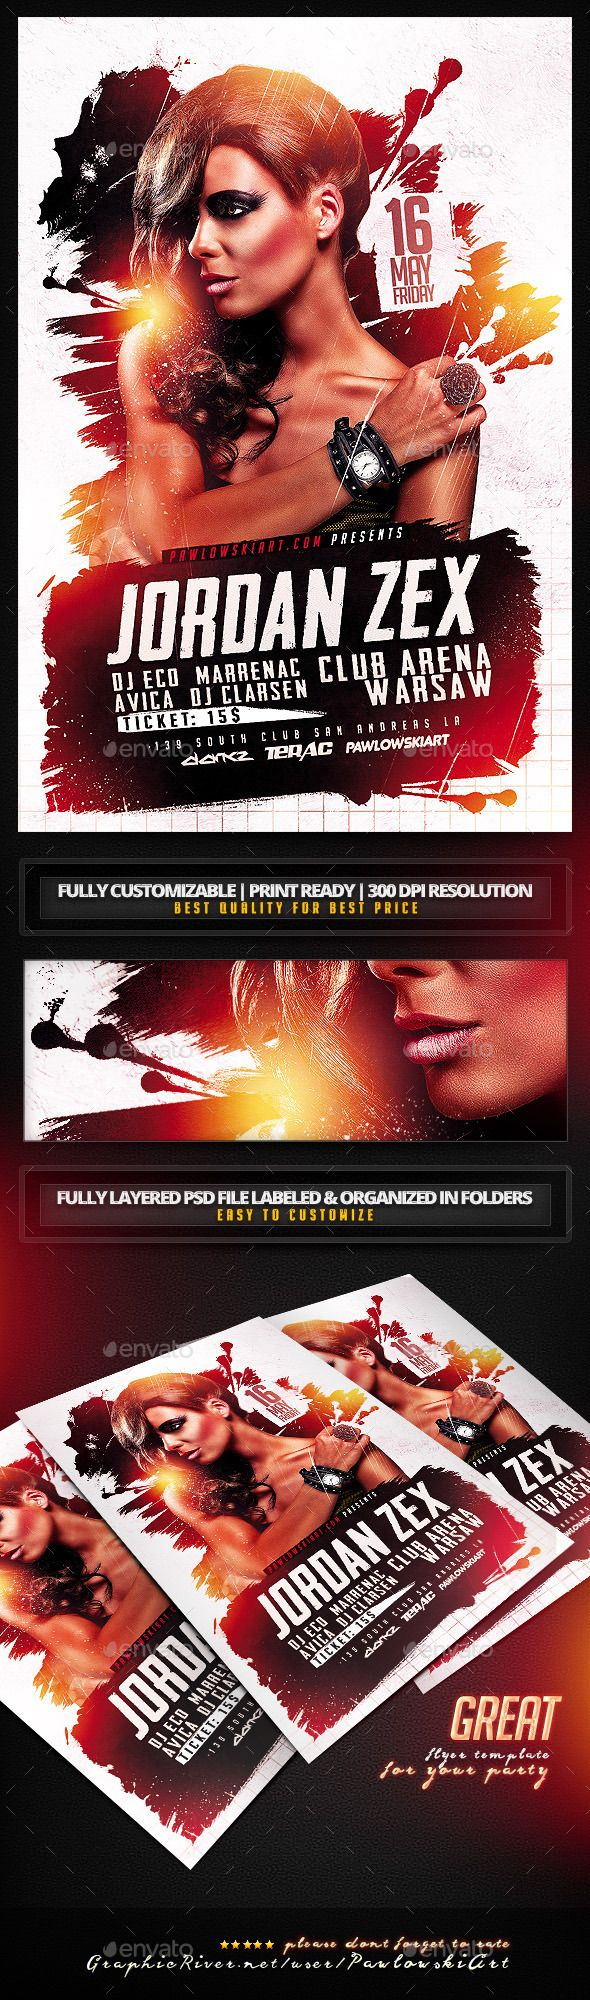 DJ Electro v5 Party Flyer PSD Template — Photoshop PSD #grunge #dj flyer • Available here → https://graphicriver.net/item/dj-electro-v5-party-flyer-psd-template/11269598?ref=pxcr